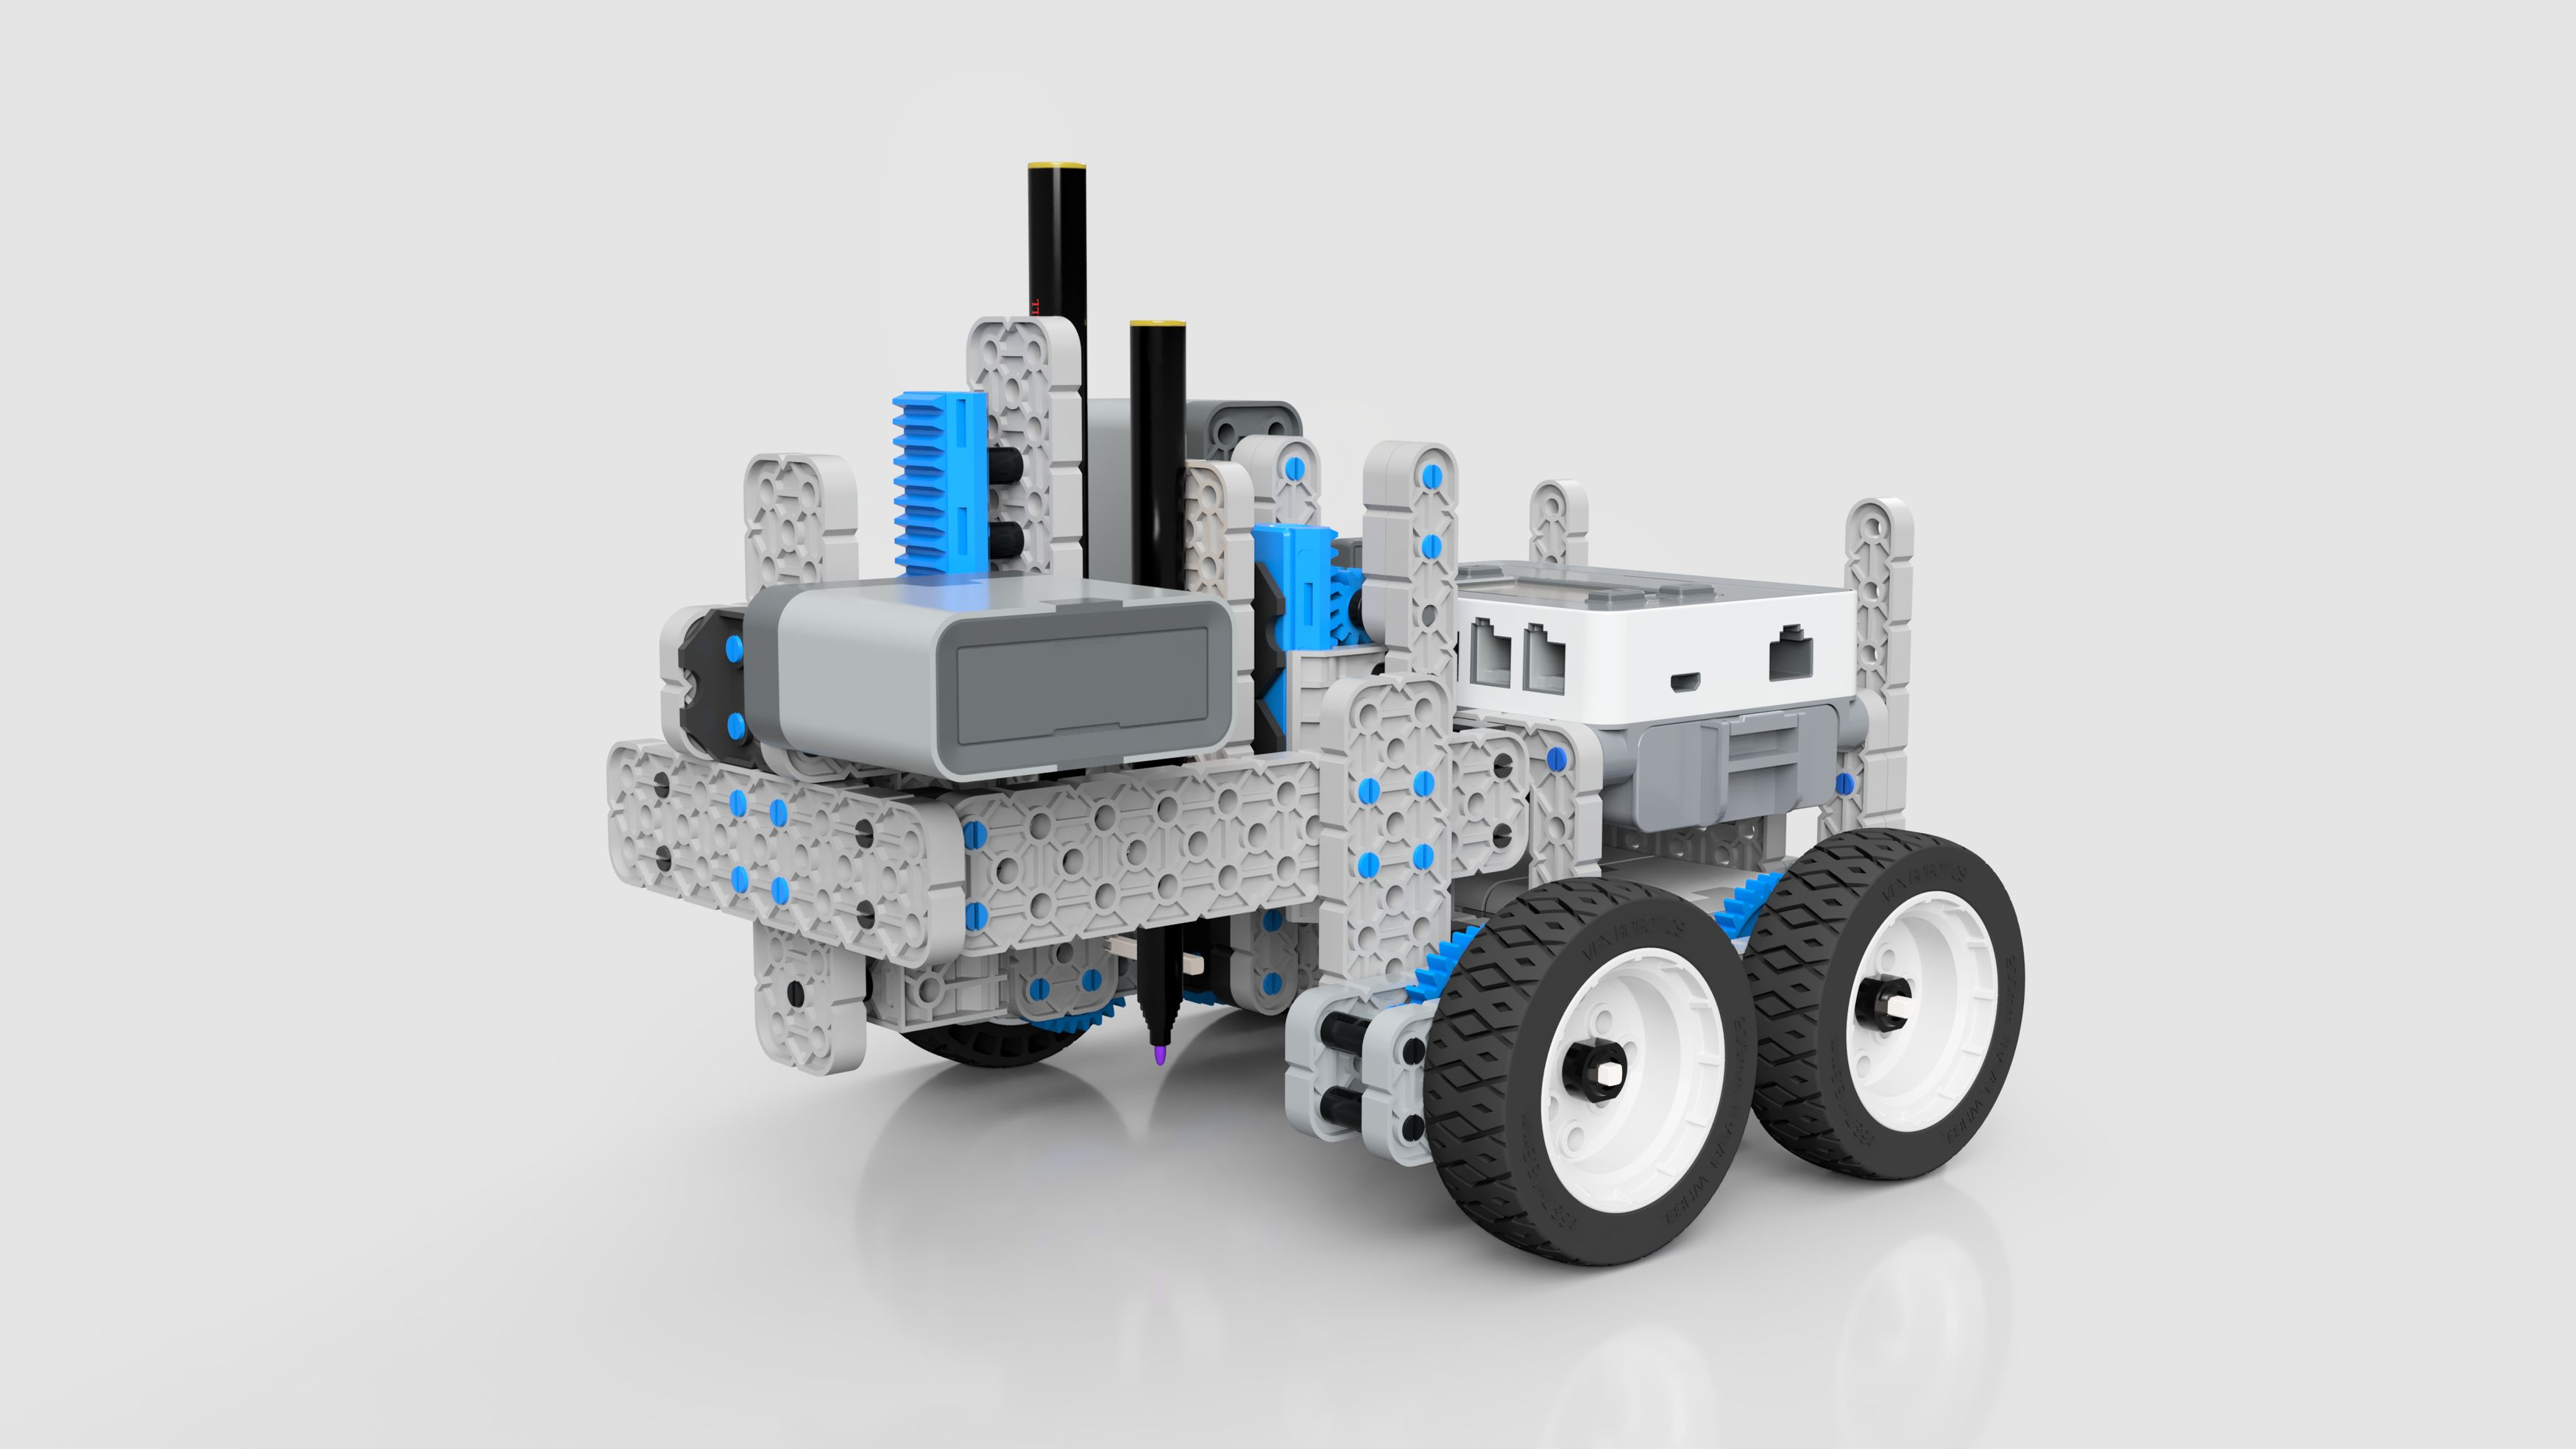 Vex-iq-robot-caneta-2020-may-24-05-58-58pm-000-customizedview38450117850-png-3500-3500